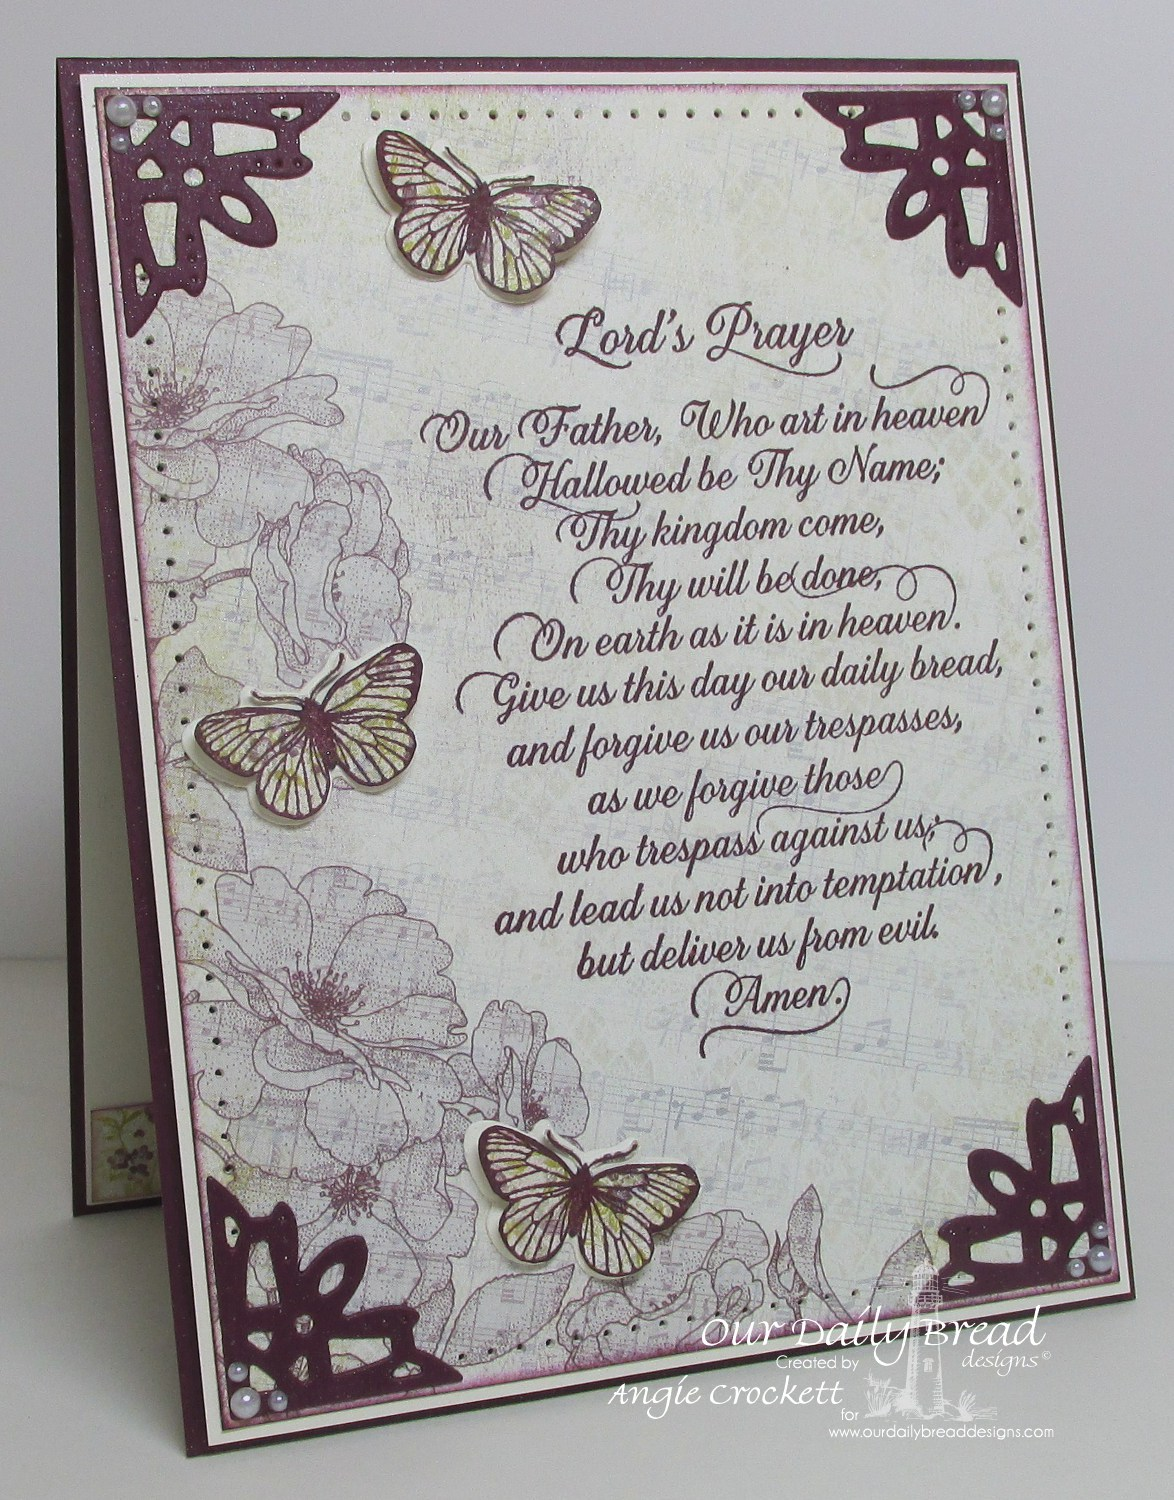 Stamps - Our Daily Bread Designs Lord's Prayer Script, Butterfly and Bugs, ODBD Custom Dies: Butterfly and Bugs, Ornate Borders and Flower